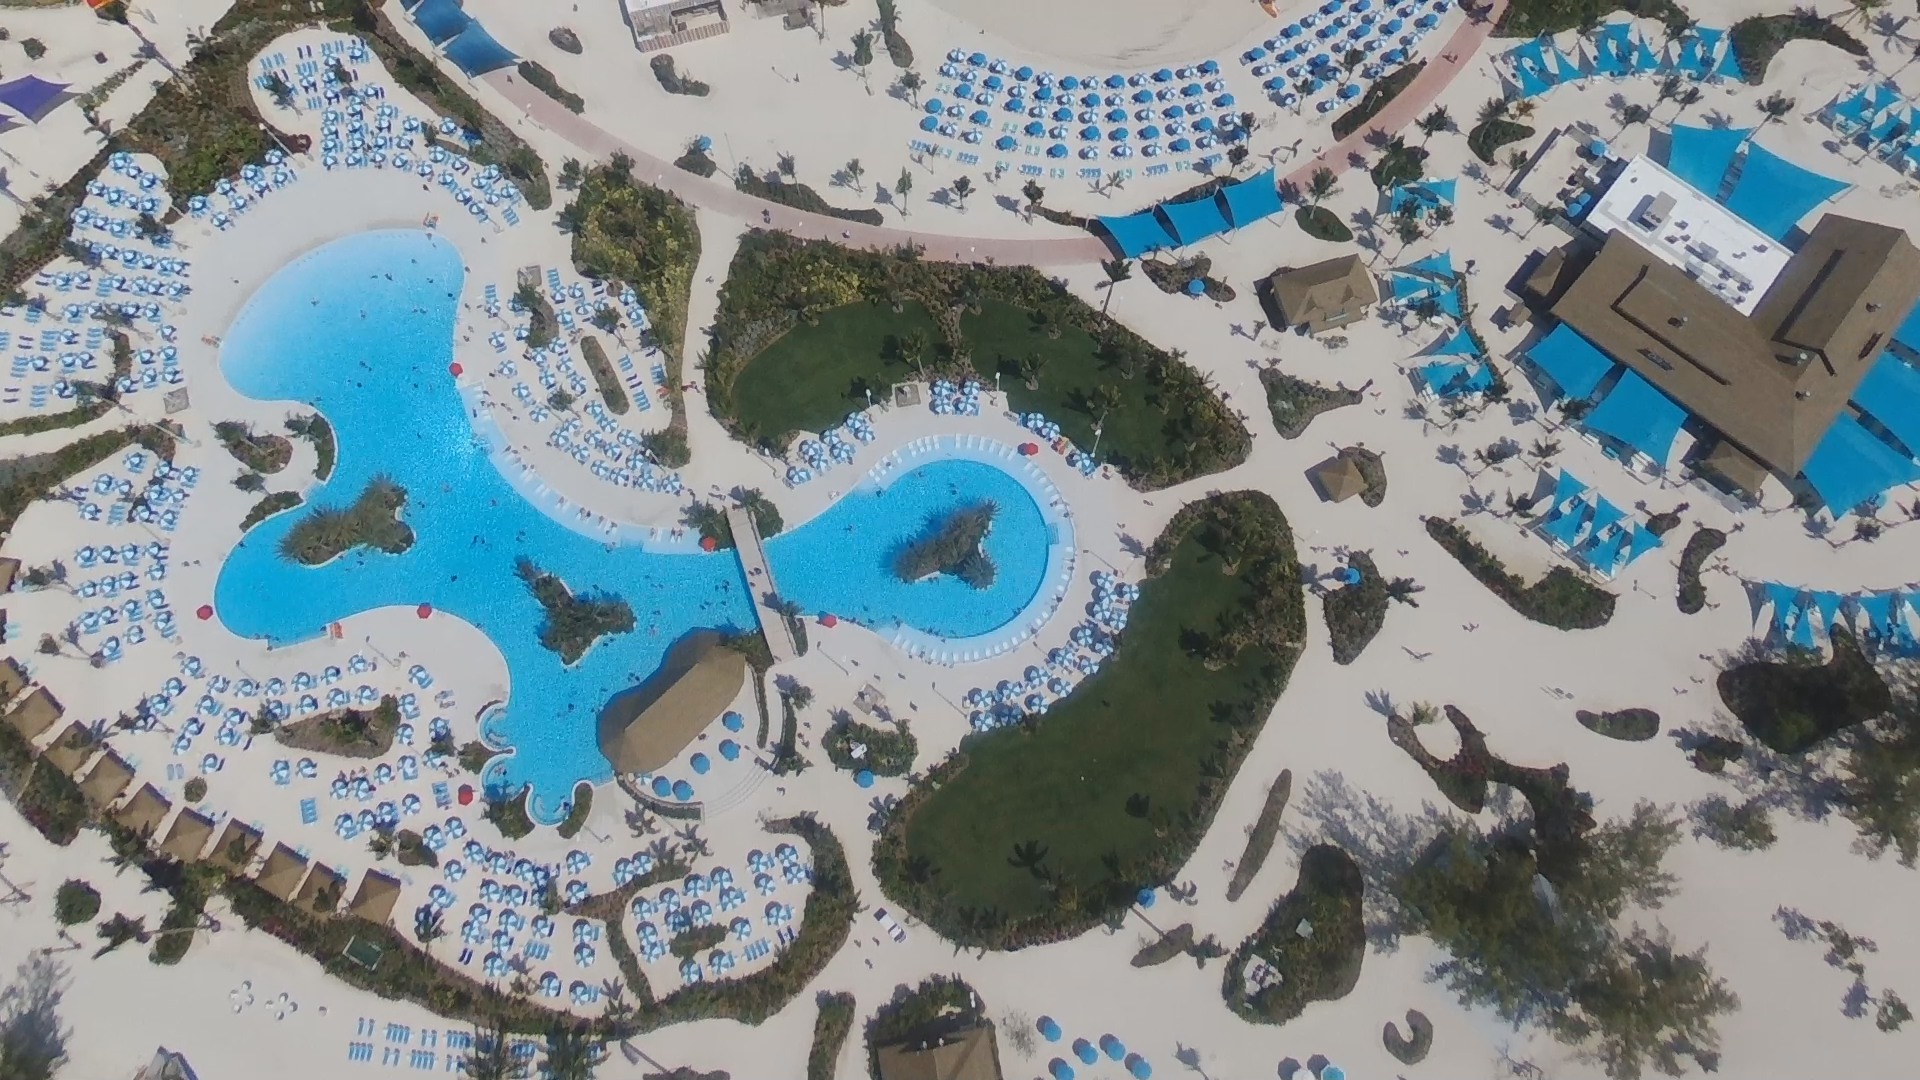 pdacc oasis lagoon.png